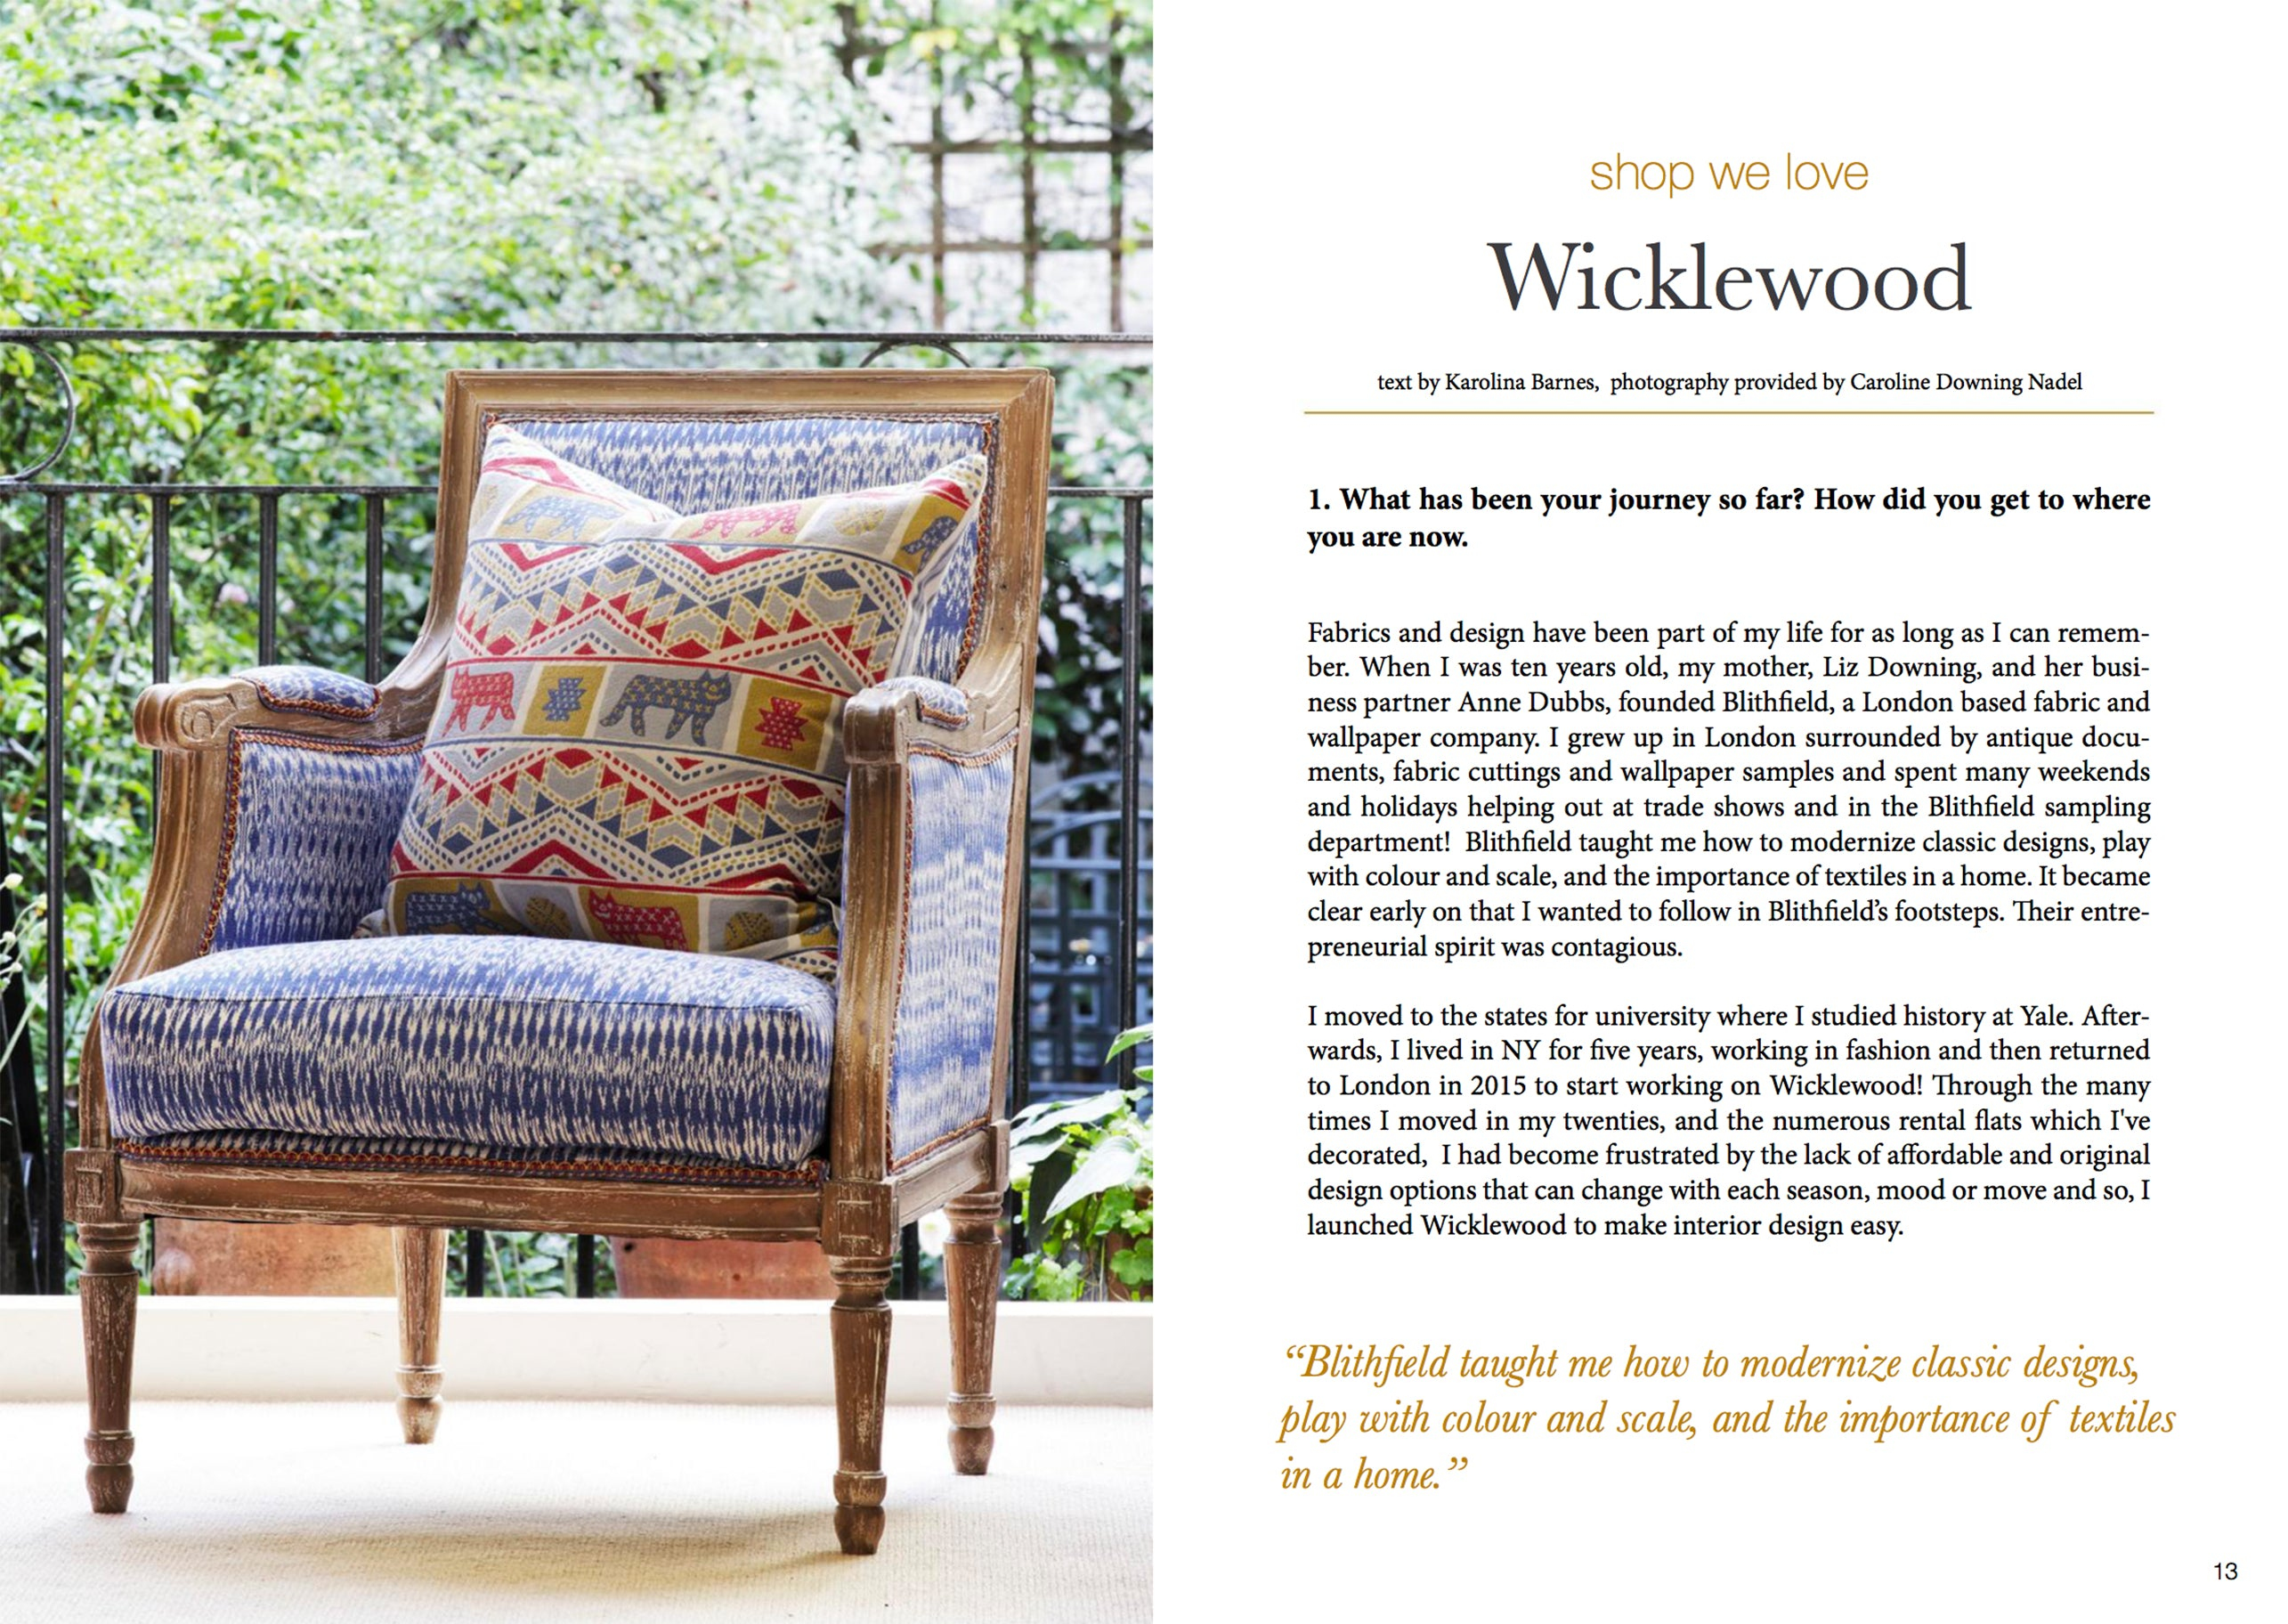 Wicklewood Press - Estila Magazine featuring Blithfield